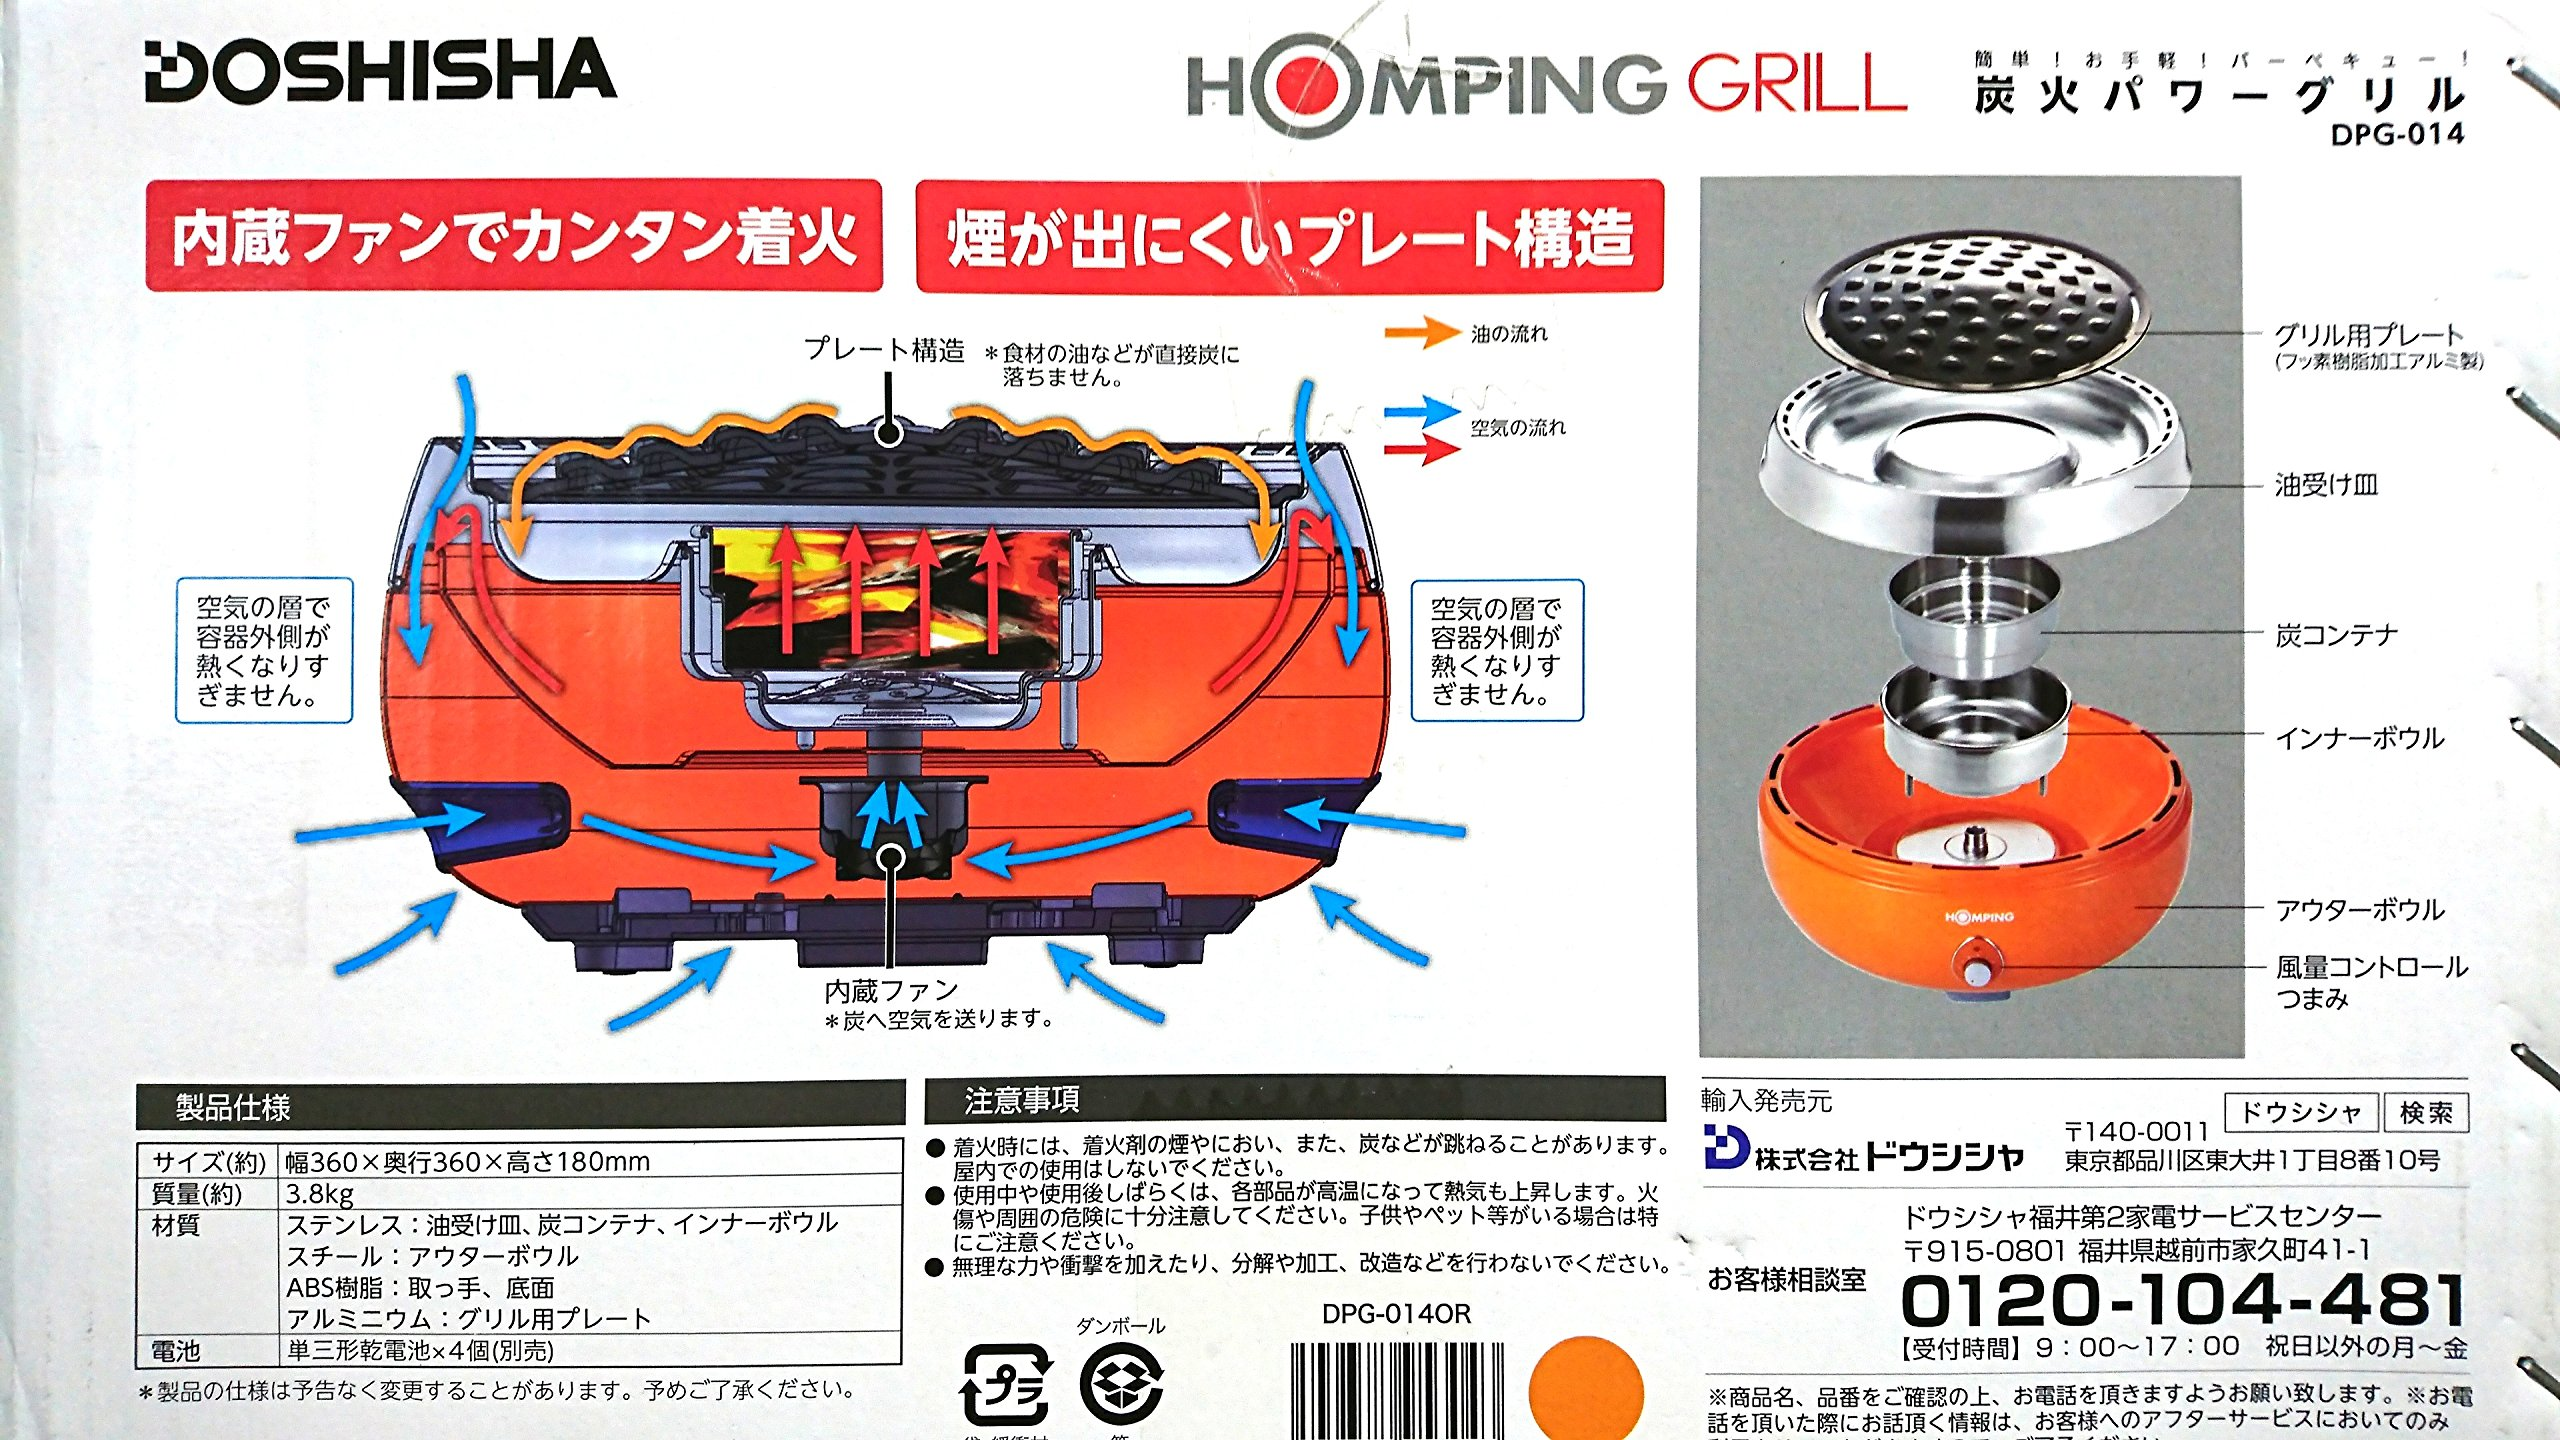 Doshisha HOMPING charcoal grill power Orange Super easy ignition From import JPN by HOMPING (Image #3)